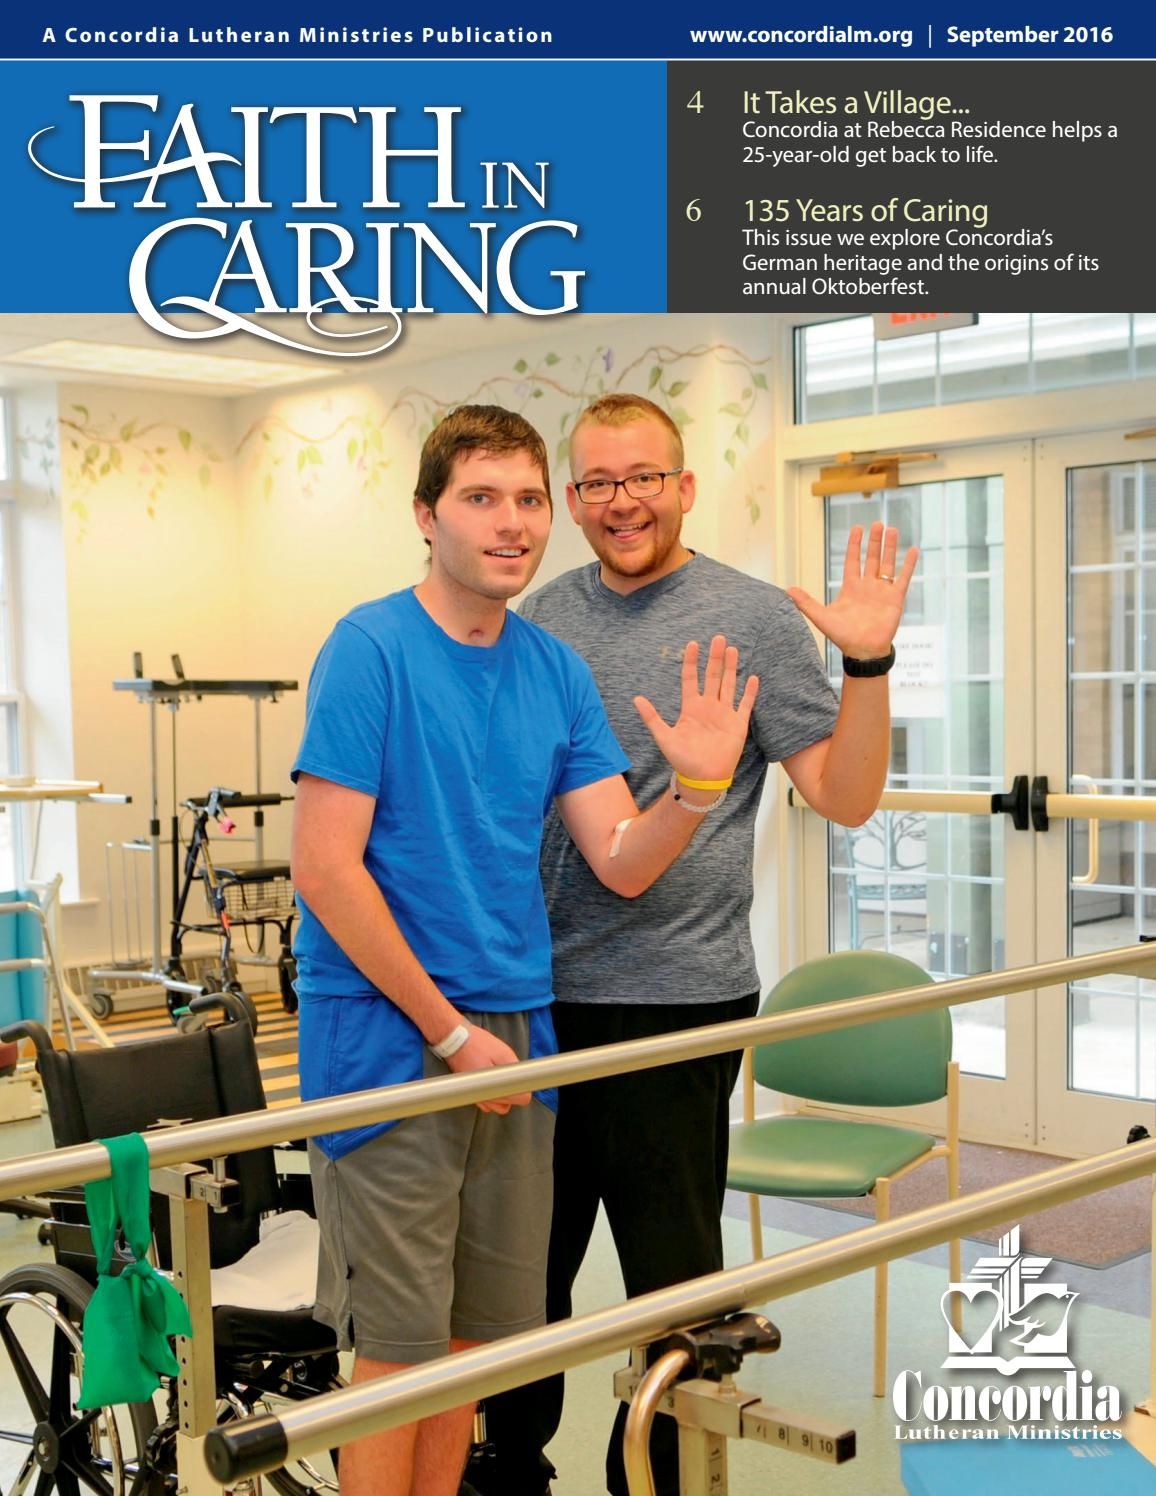 faith in caring by concordia lutheran ministries issuu faith in caring 16